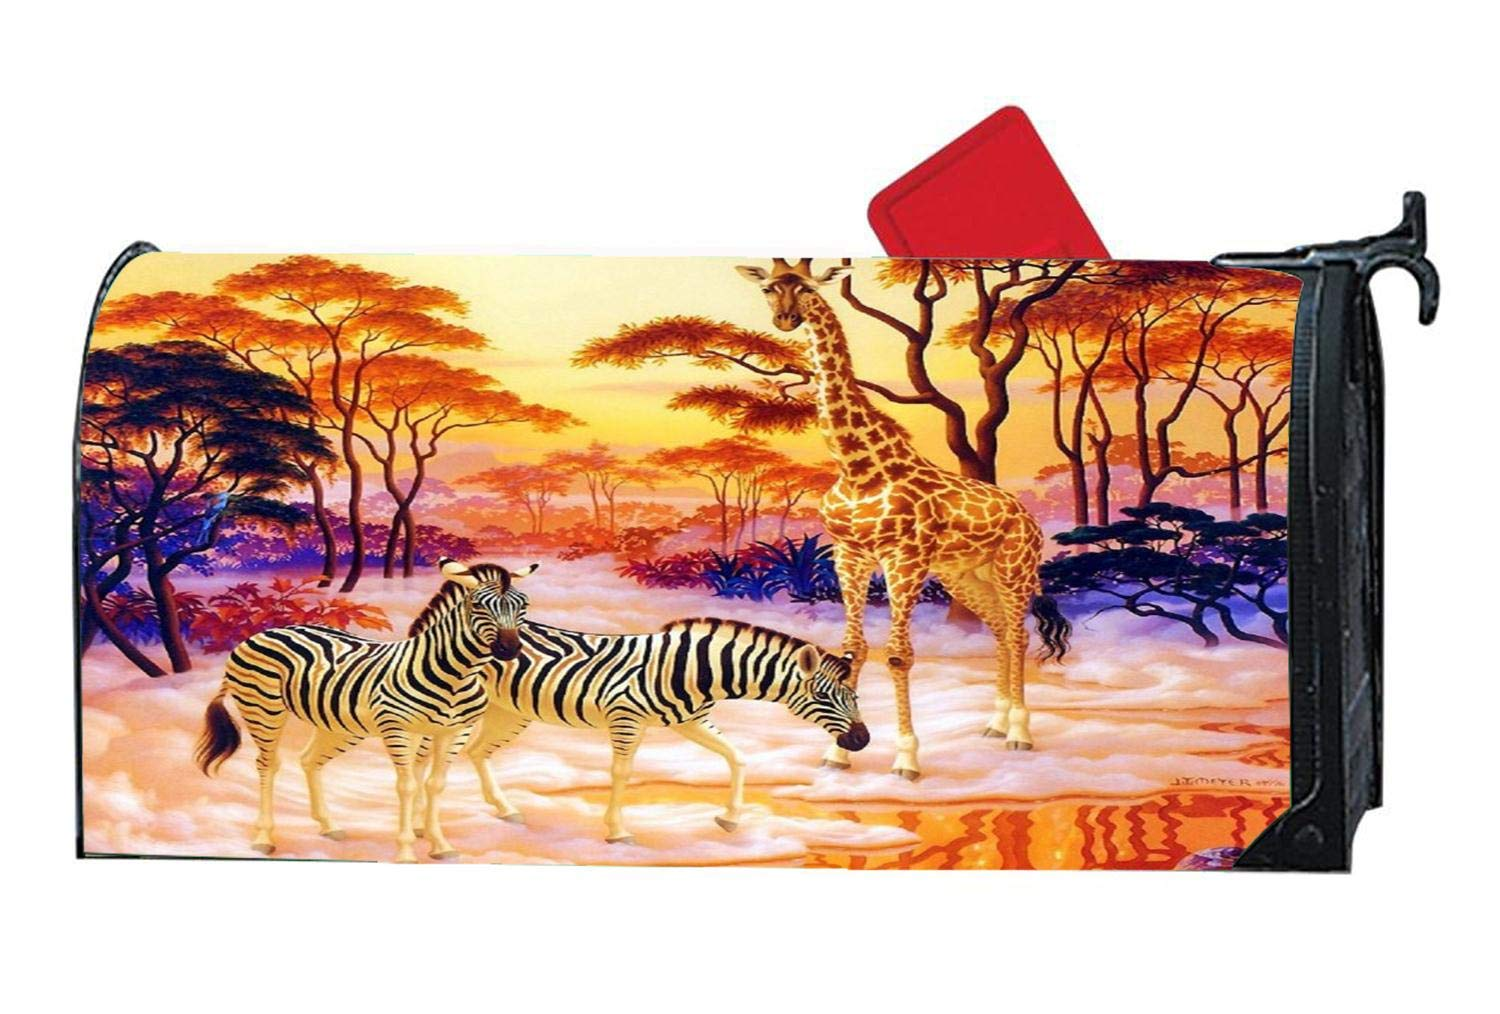 Africa Wildlife Sunset Giraffe Personalized Decorative Magnetic Mailbox Cover Vinyl Standard Mailbox Wrap with Animals Design 6.5 x 19